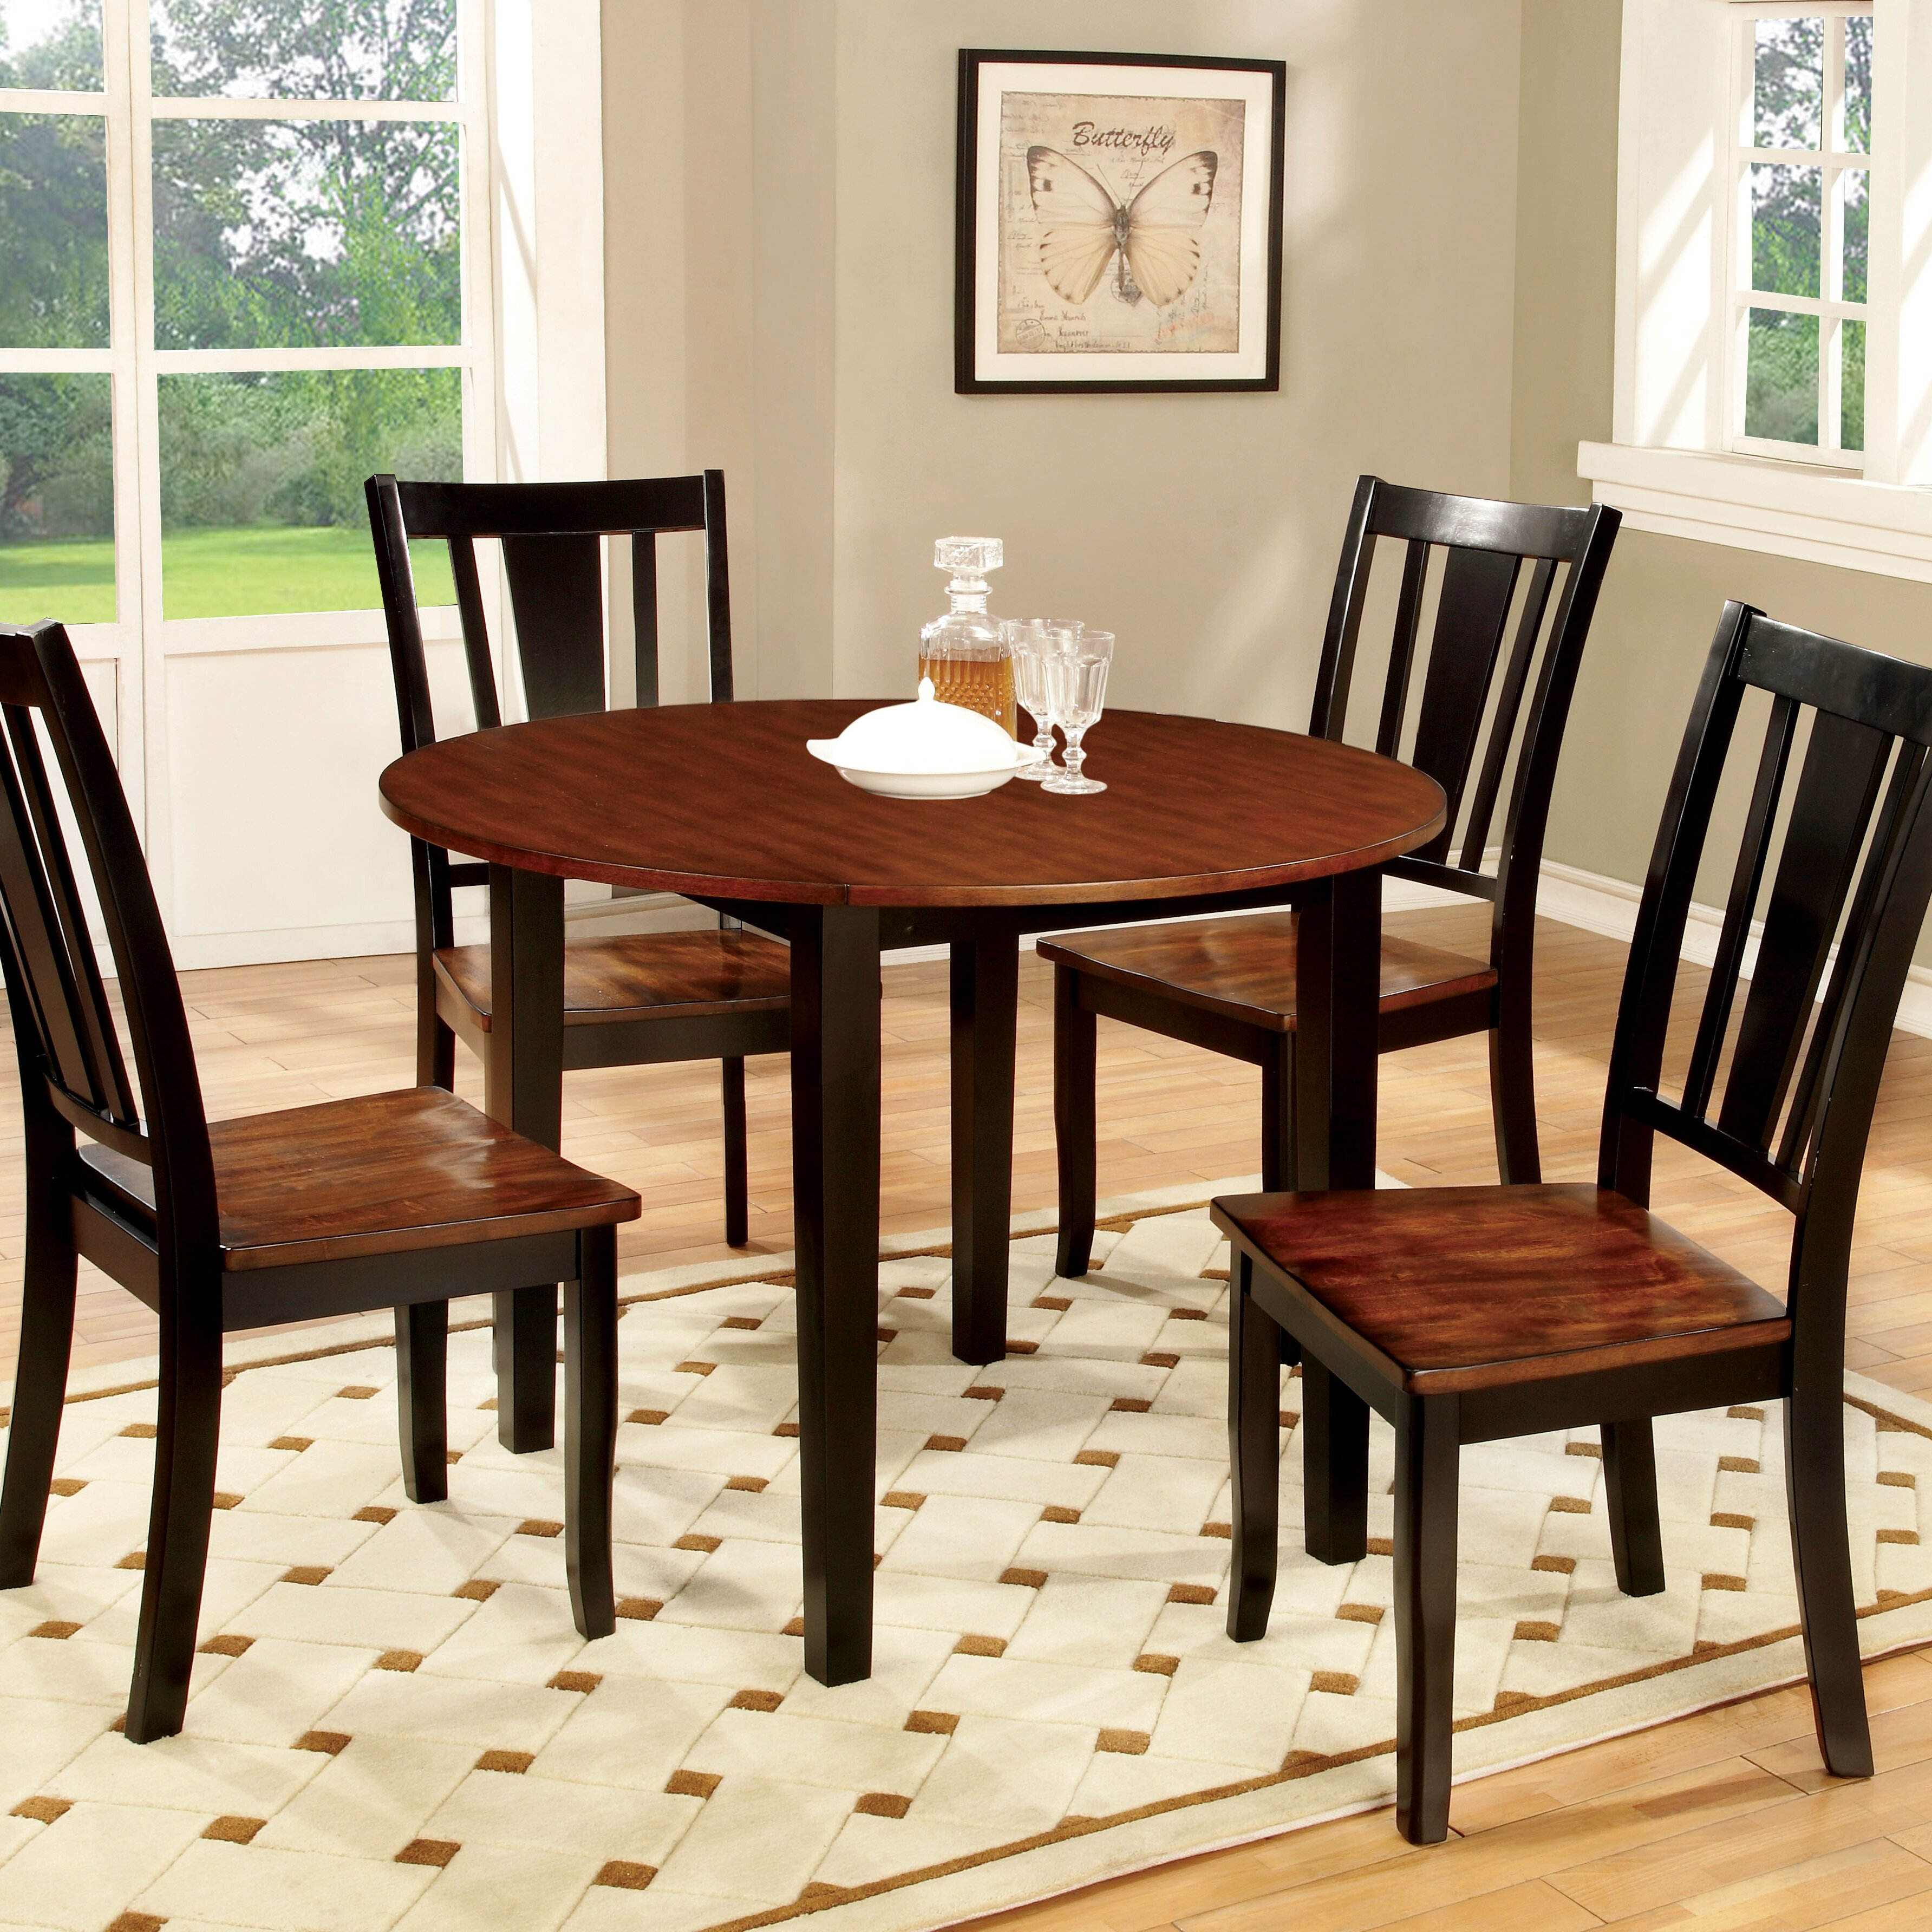 Althea Dining Table Wayfair : Althea Transitional Round Table from www.wayfair.com size 3568 x 3568 jpeg 2188kB